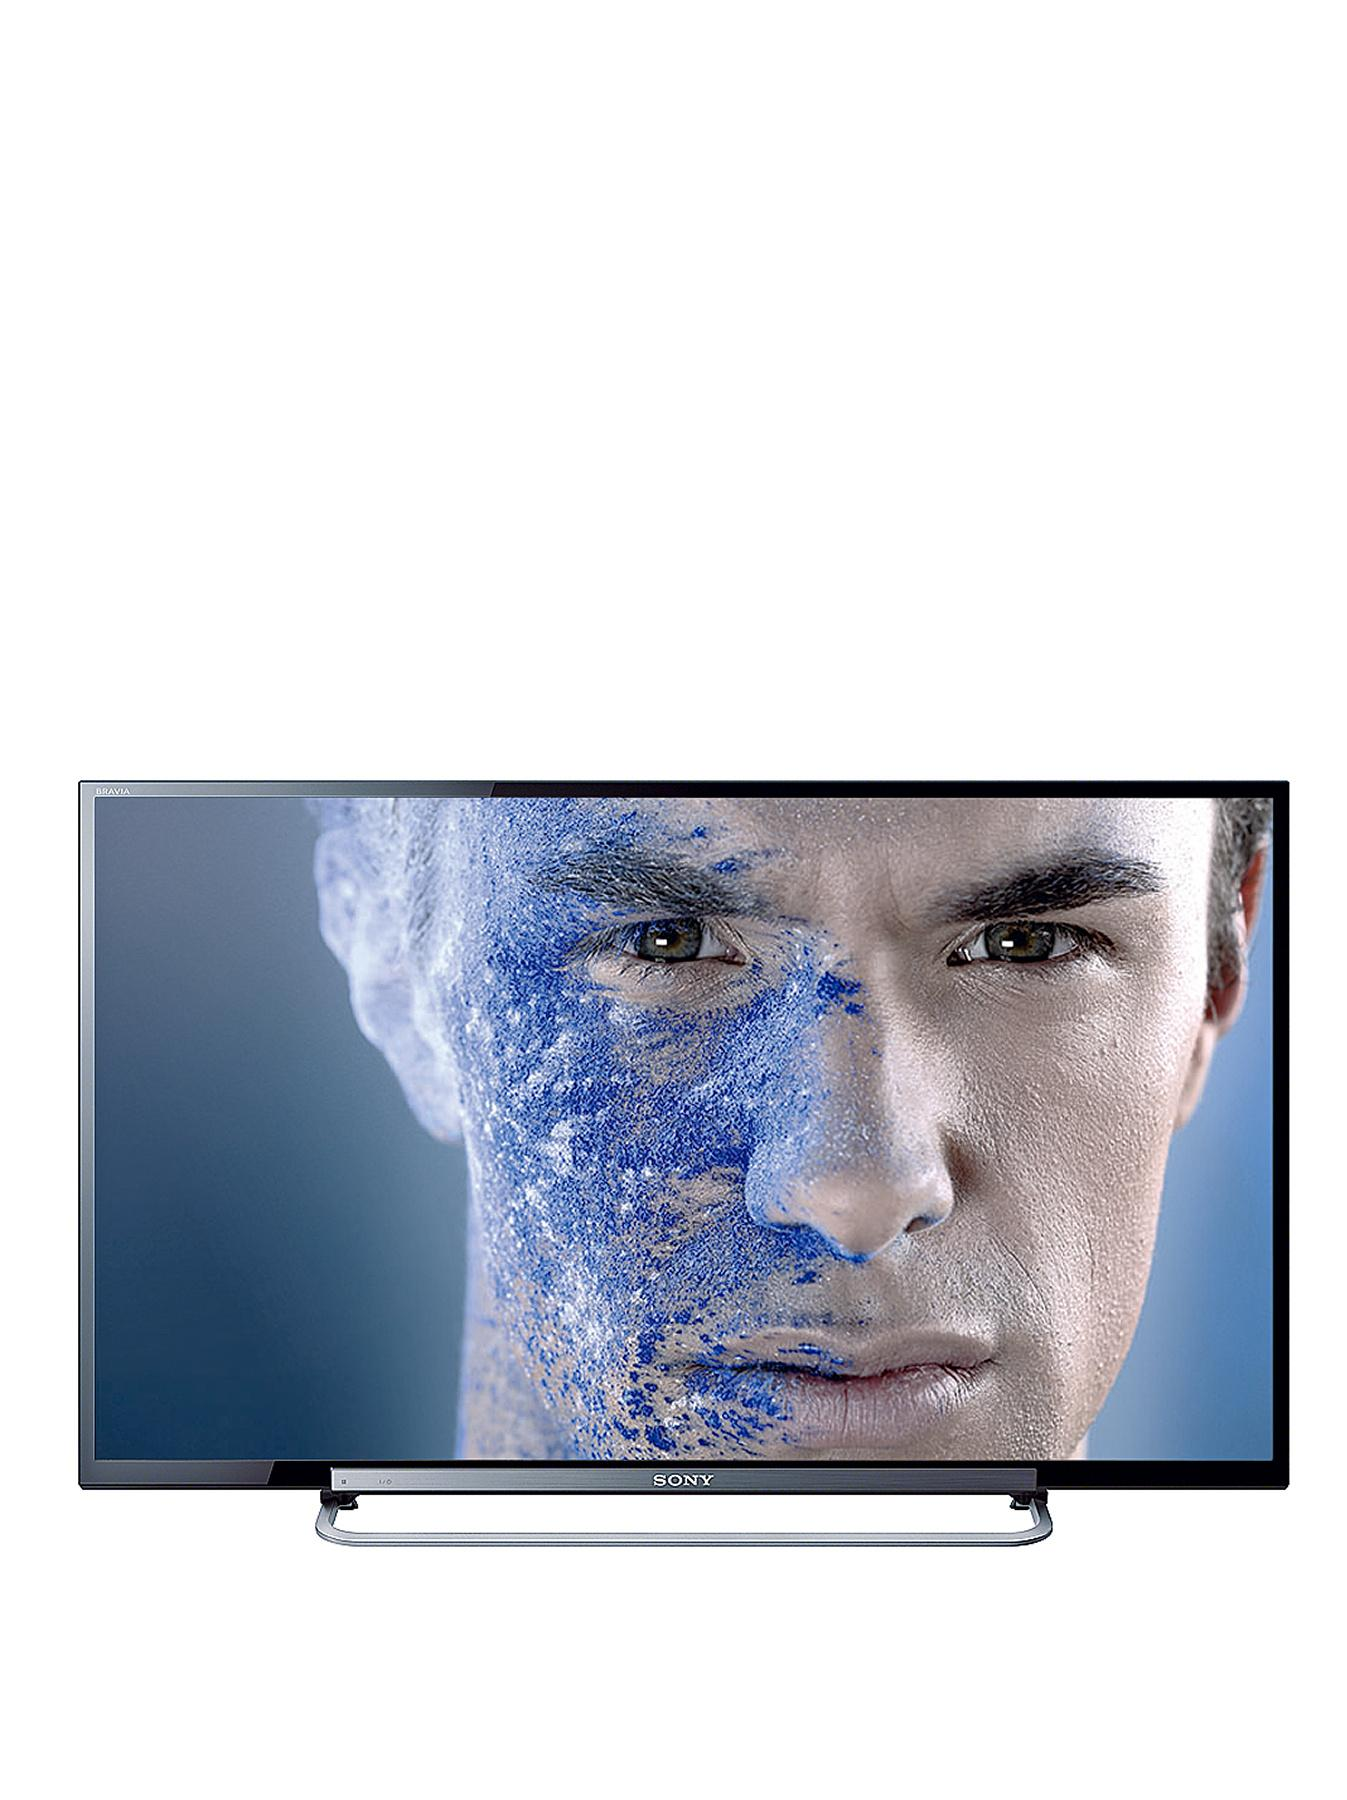 Sony KDL42W654 42-inch Widescreen 1080p Full HD LED Smart TV with Freeview HD